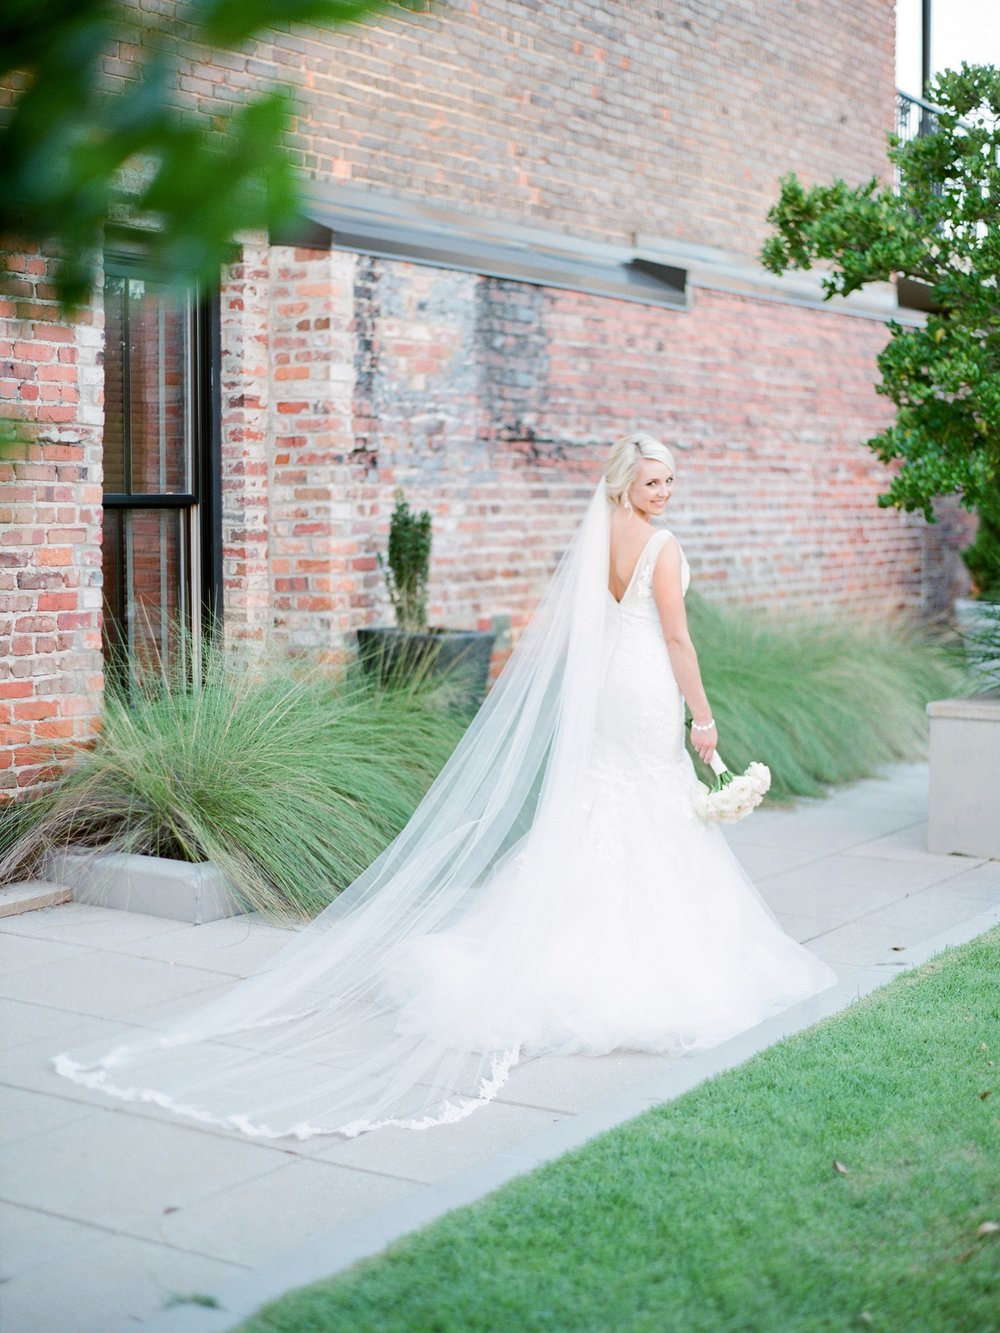 photography_editorial_martha stewart wedding-beautiful bride_cathedral veil_birmingham wedding photographer_alabama wedding photographer_destin rosemary alys beach 30A luxury wedding photographer